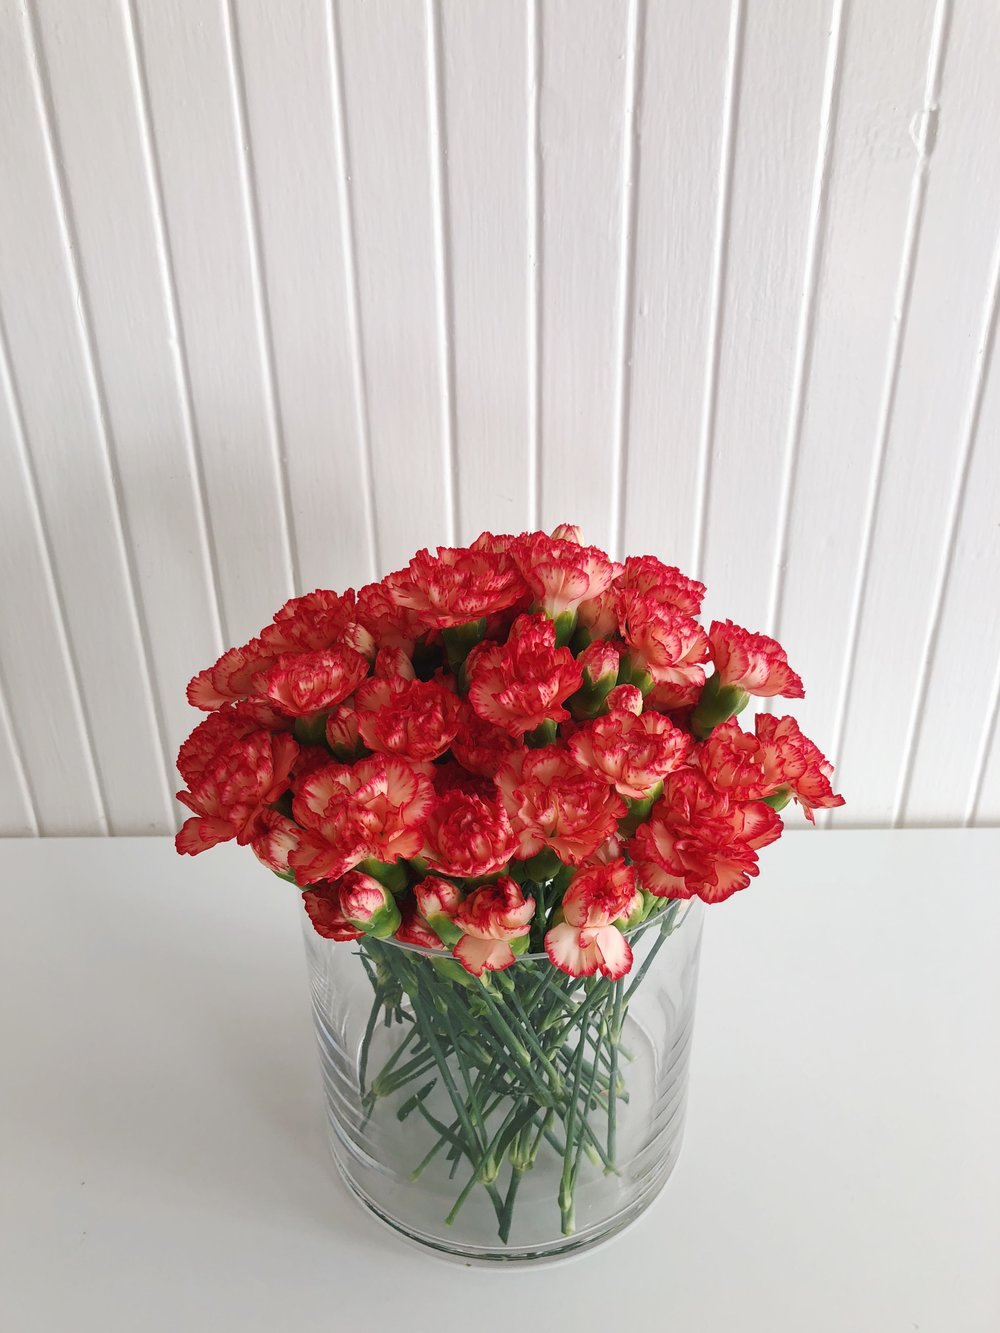 How To Arrange Grocery Store Flowers (And 30 Beautiful Vases To Put ...